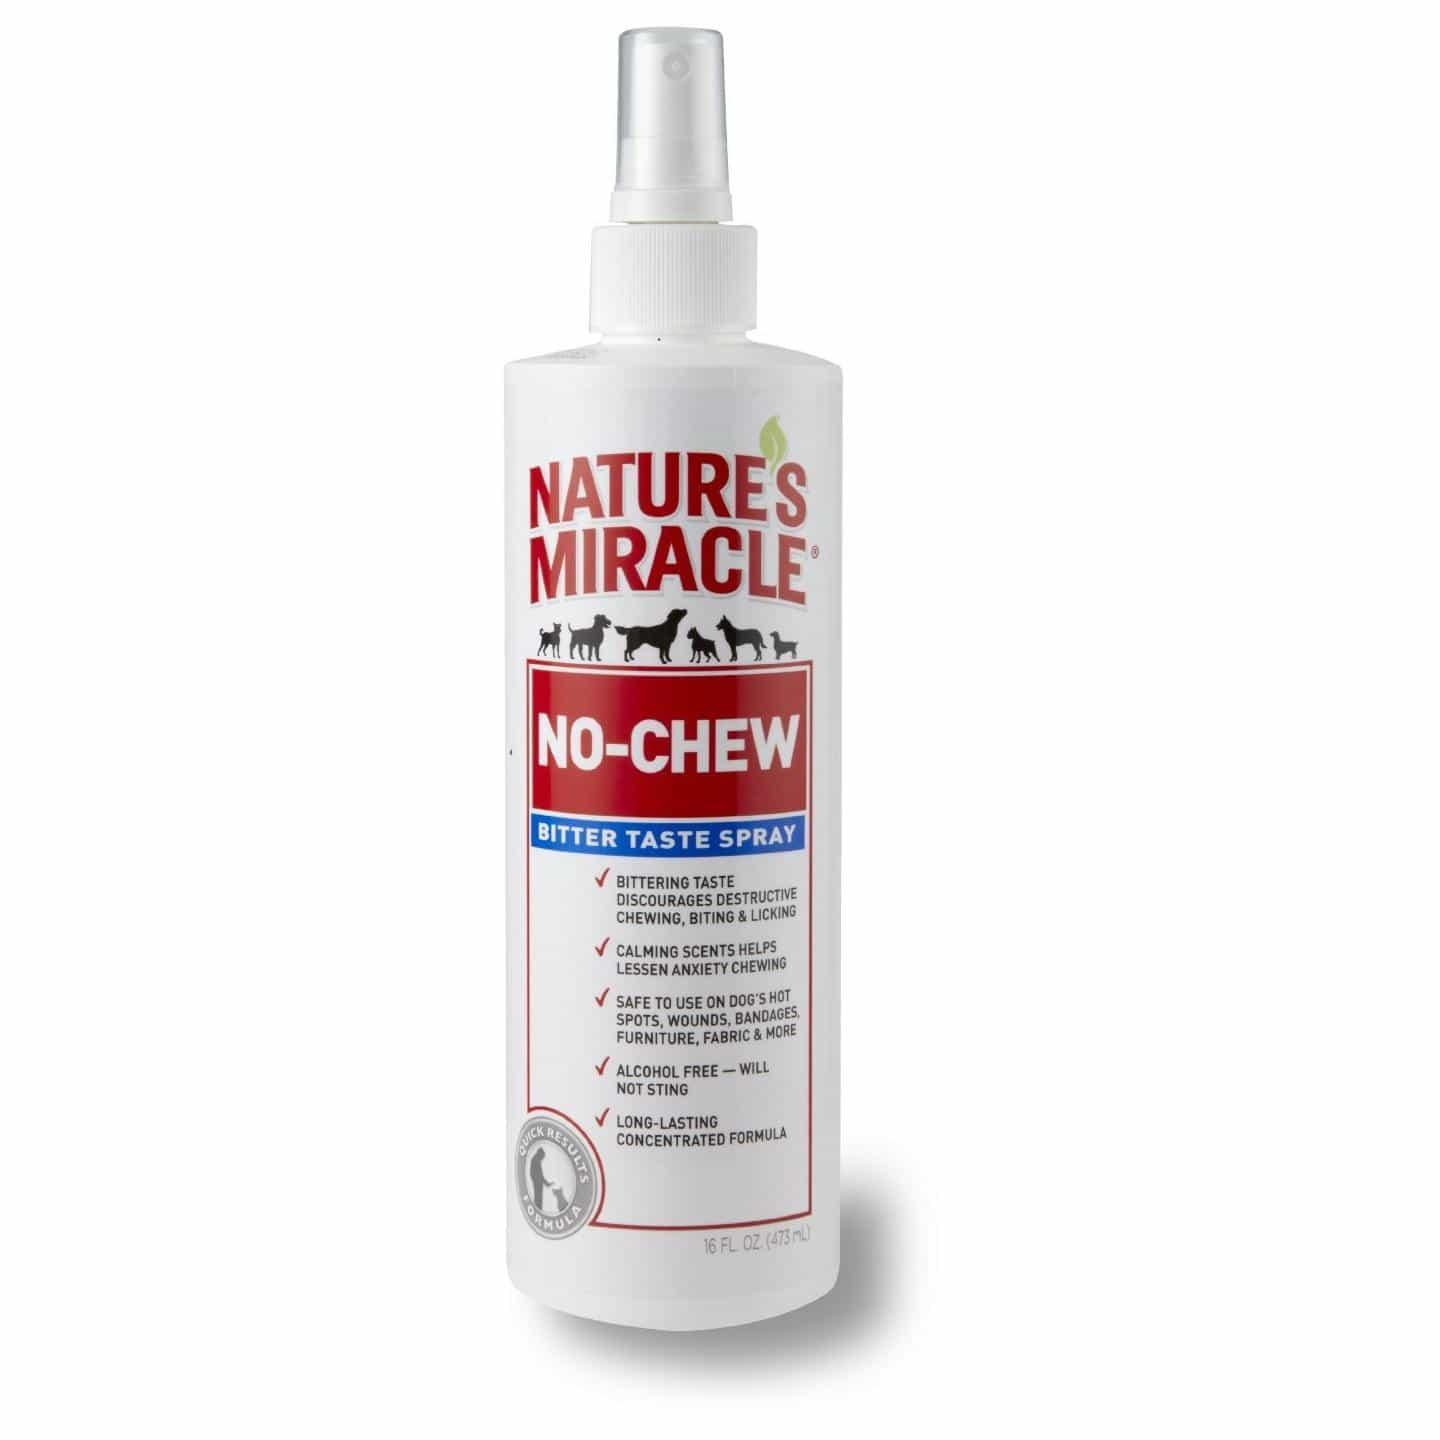 Natures Miracle Nature's Miracle No Chew Bitter Taste Spray 236ml